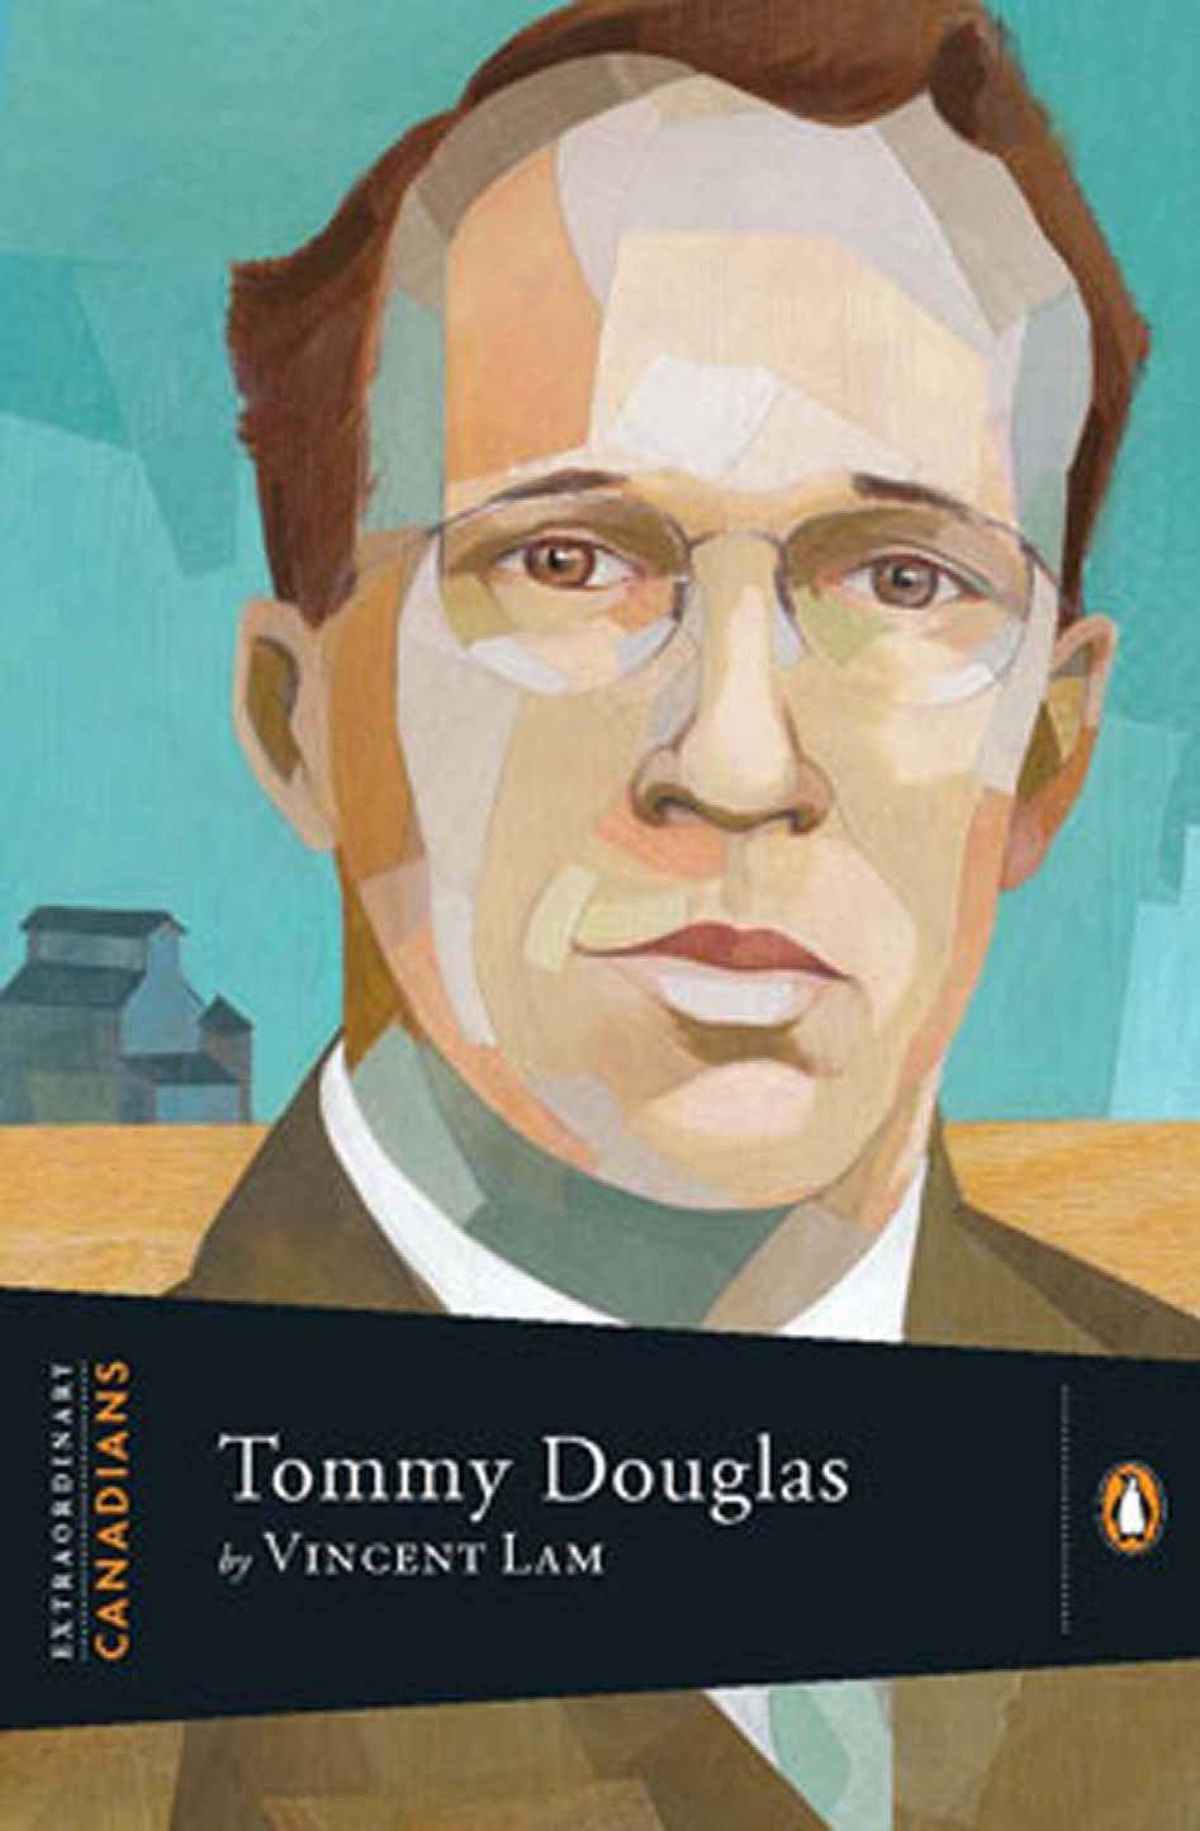 TOMMY DOUGLAS By Vincent Lam (Penguin Canada) Placing Tommy Douglas's 17 years as premier of Saskatchewan and his role as father of medicare at the centre of the narrative, Lam, a Giller Prize-winning author who's also an emergency physician, gives Douglas's incomparable career a thoughtful, balanced, lucid assessment. Lam clearly feels a strong affinity for Tommy – not only for his innovative achievements in health care, but for his compassion, decency and moral courage. – Roy MacSkimming